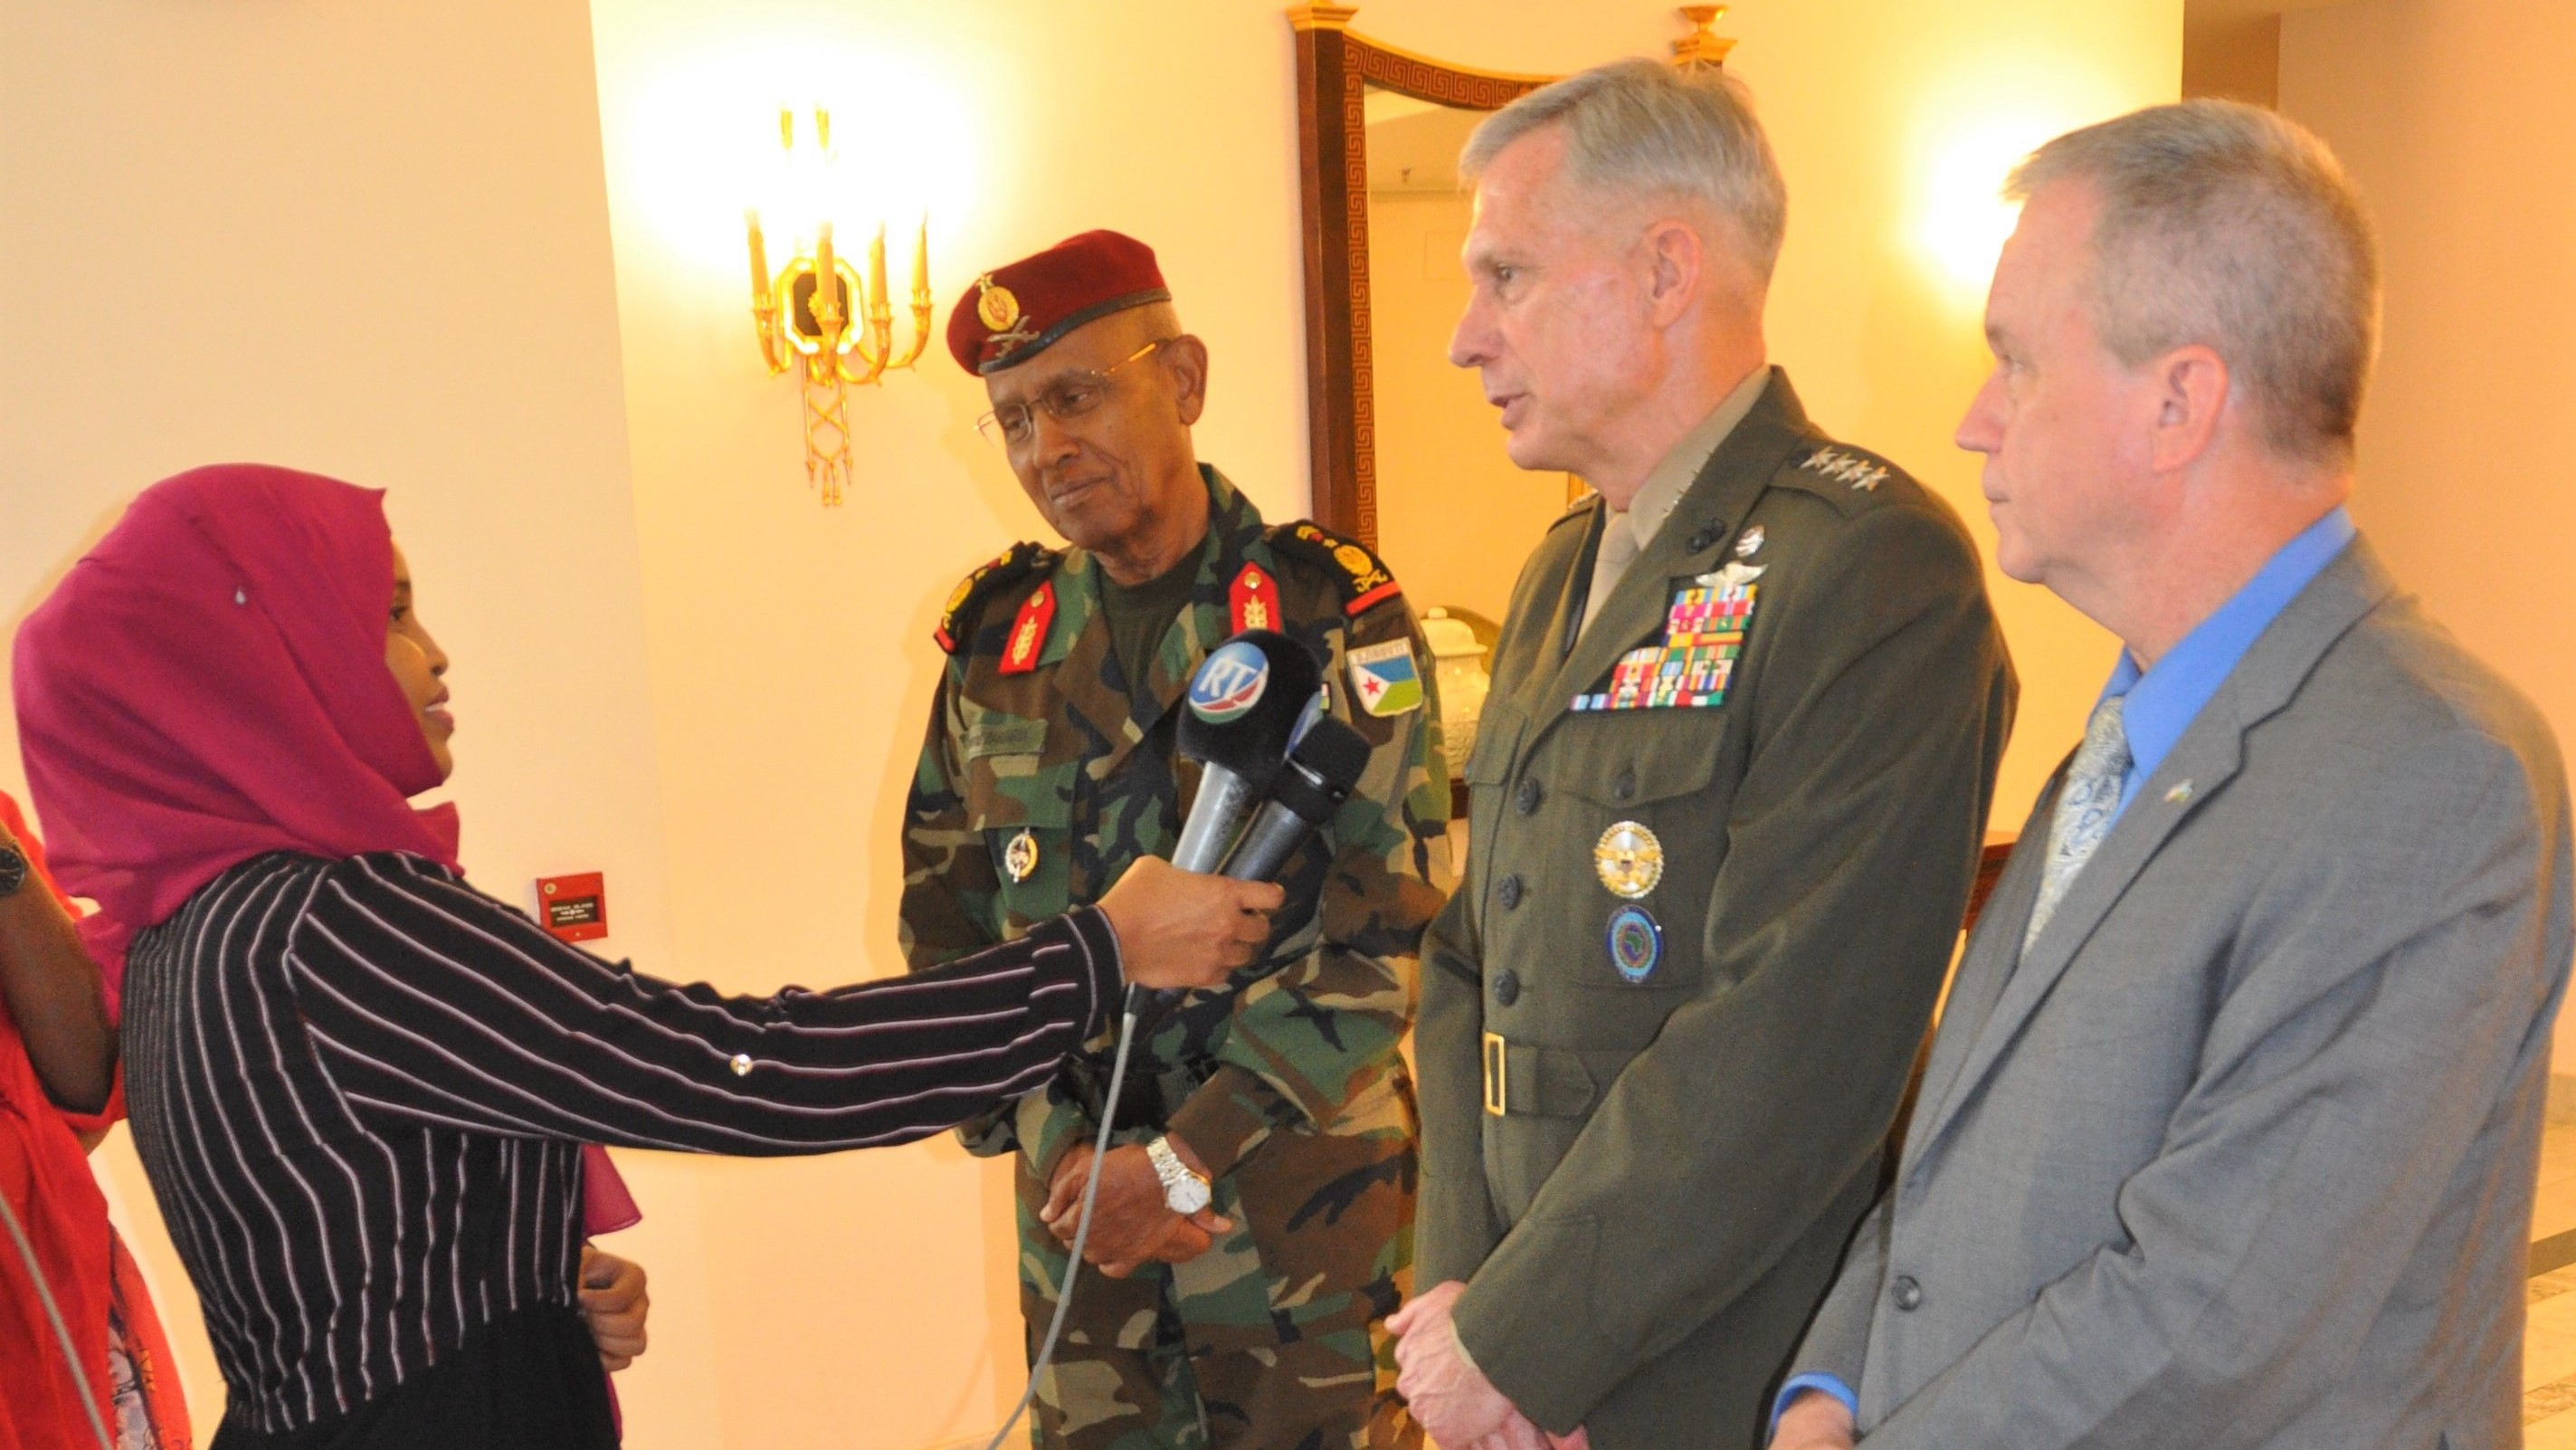 "DJIBOUTI CITY, Djibouti—U.S. Ambassador to Djibouti Larry André and Gen. Thomas D. Waldhauser, commander of United States Africa Command (AFRICOM), conducted a media interview following a meeting with President Ismail Omar Guelleh on Nov. 29, 2018, in Djibouti City, Djibouti.  ""We have a strong, cooperative relationship with the Republic of Djibouti,"" said Waldhauser, ""and we view security and access to Djibouti as a top priority.""